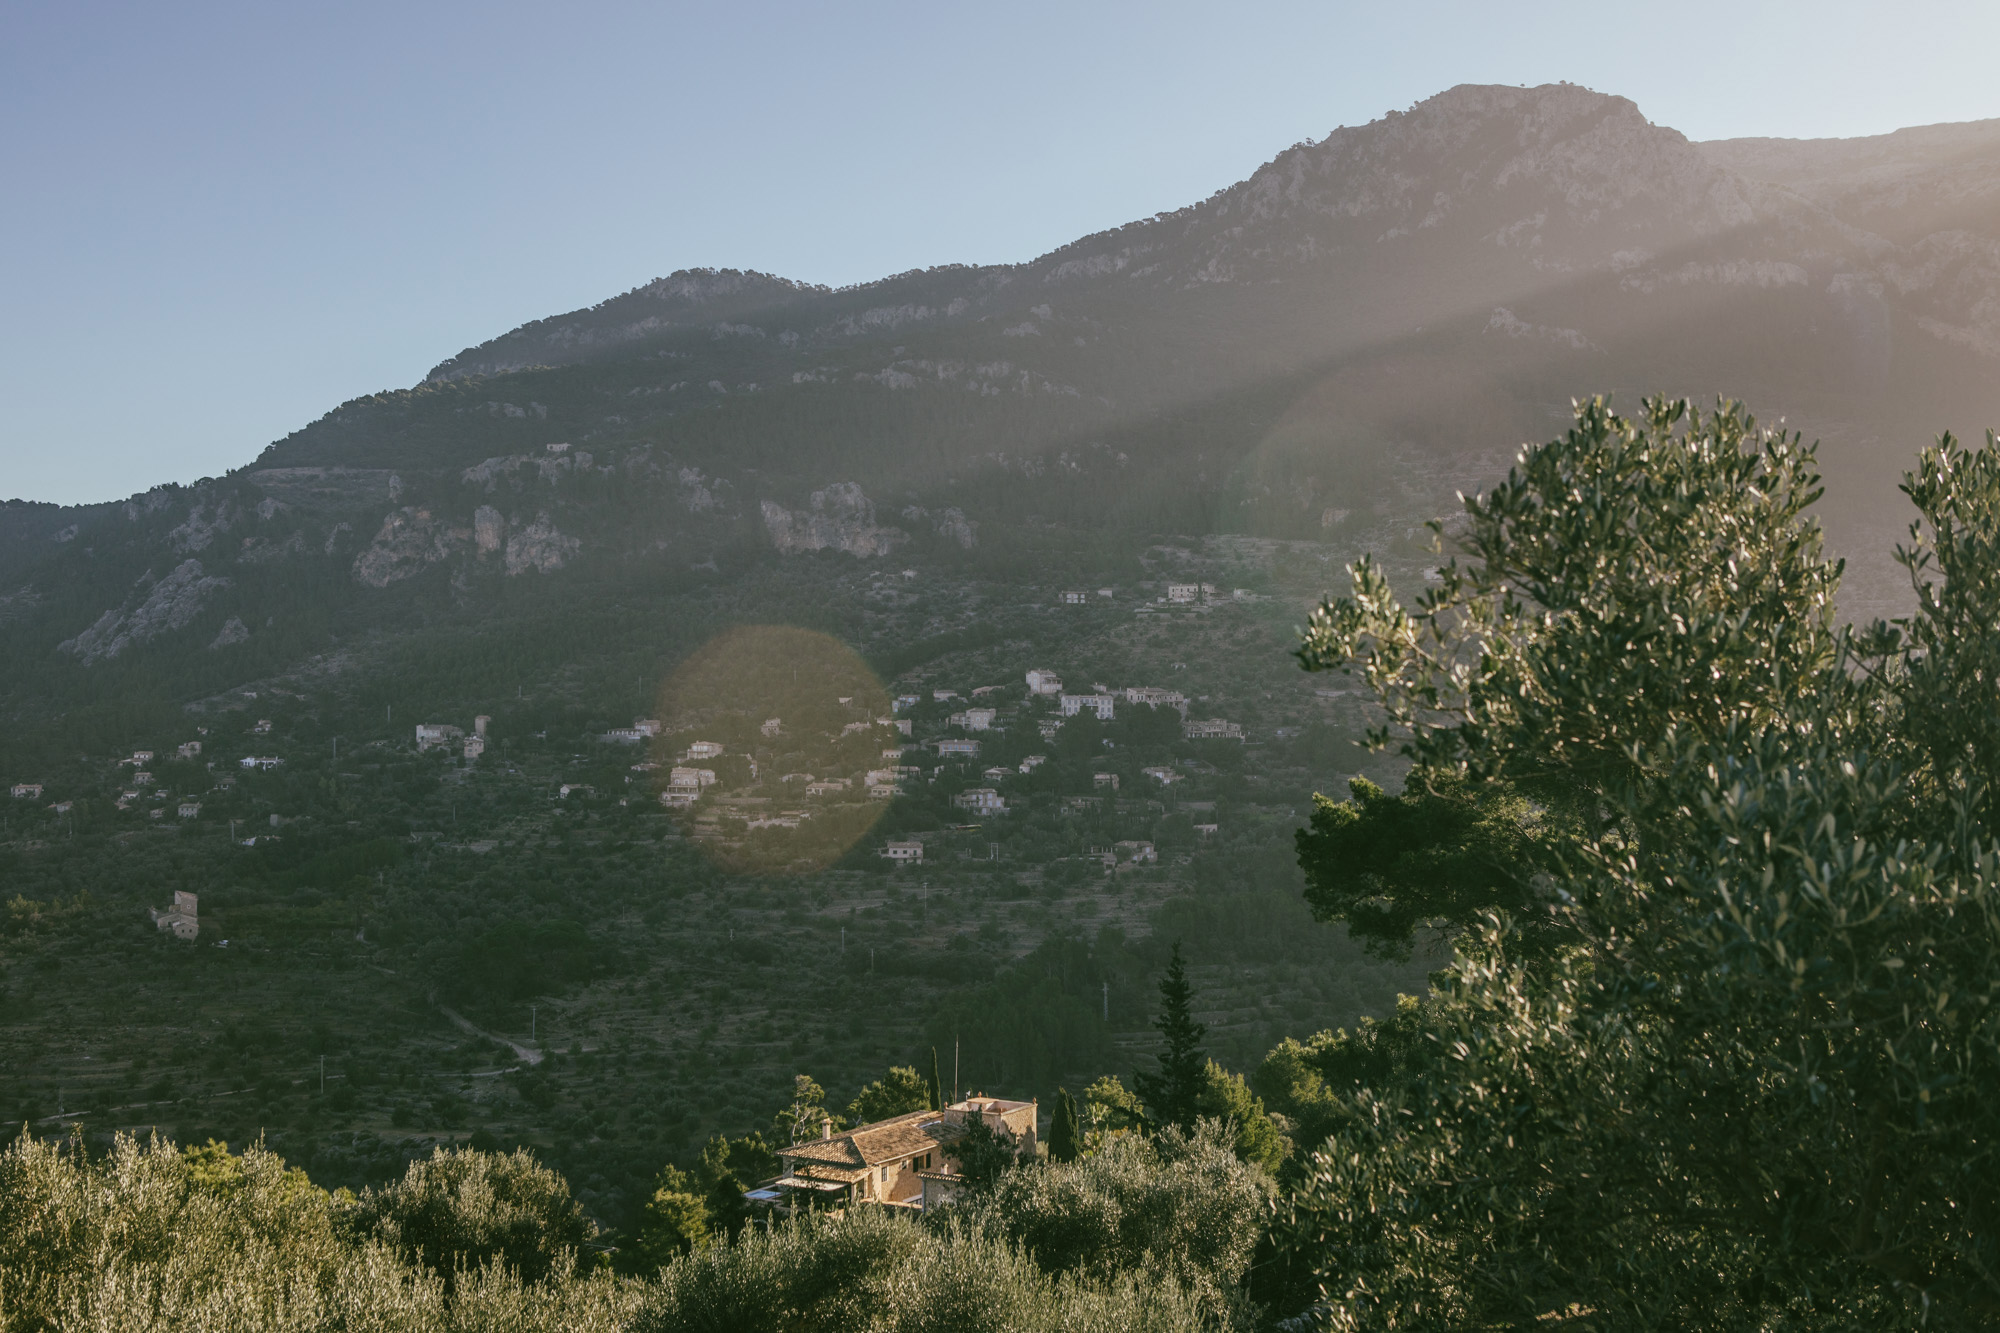 A village in the Serra de Tramuntana, visible from the MA-10.